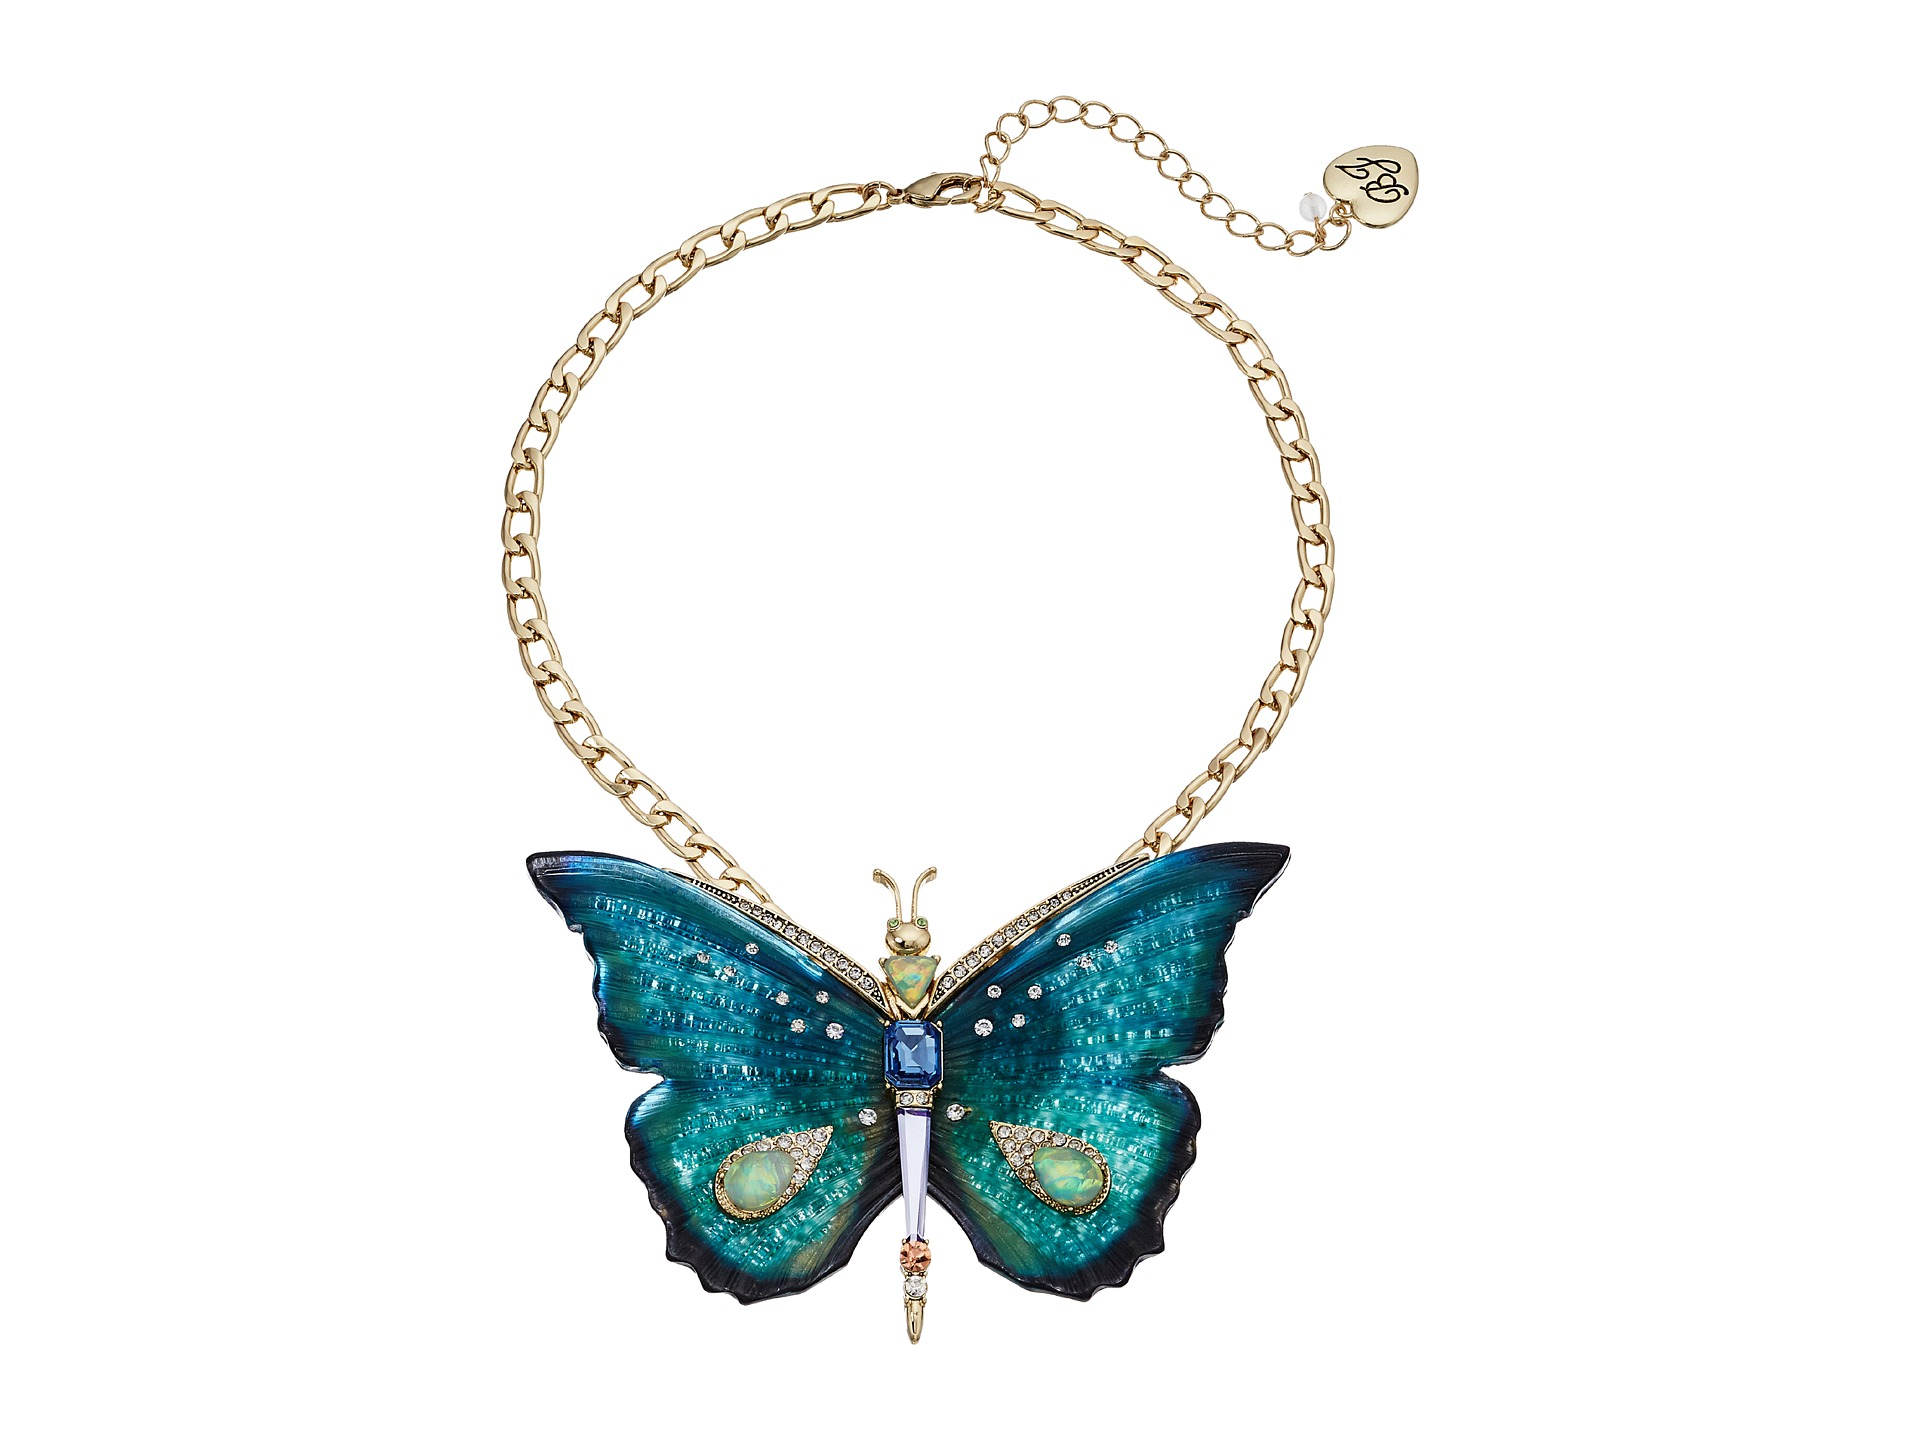 Betsey Johnson Large Butterfly Pendant Necklace - Zappos.com Free Shipping BOTH Ways